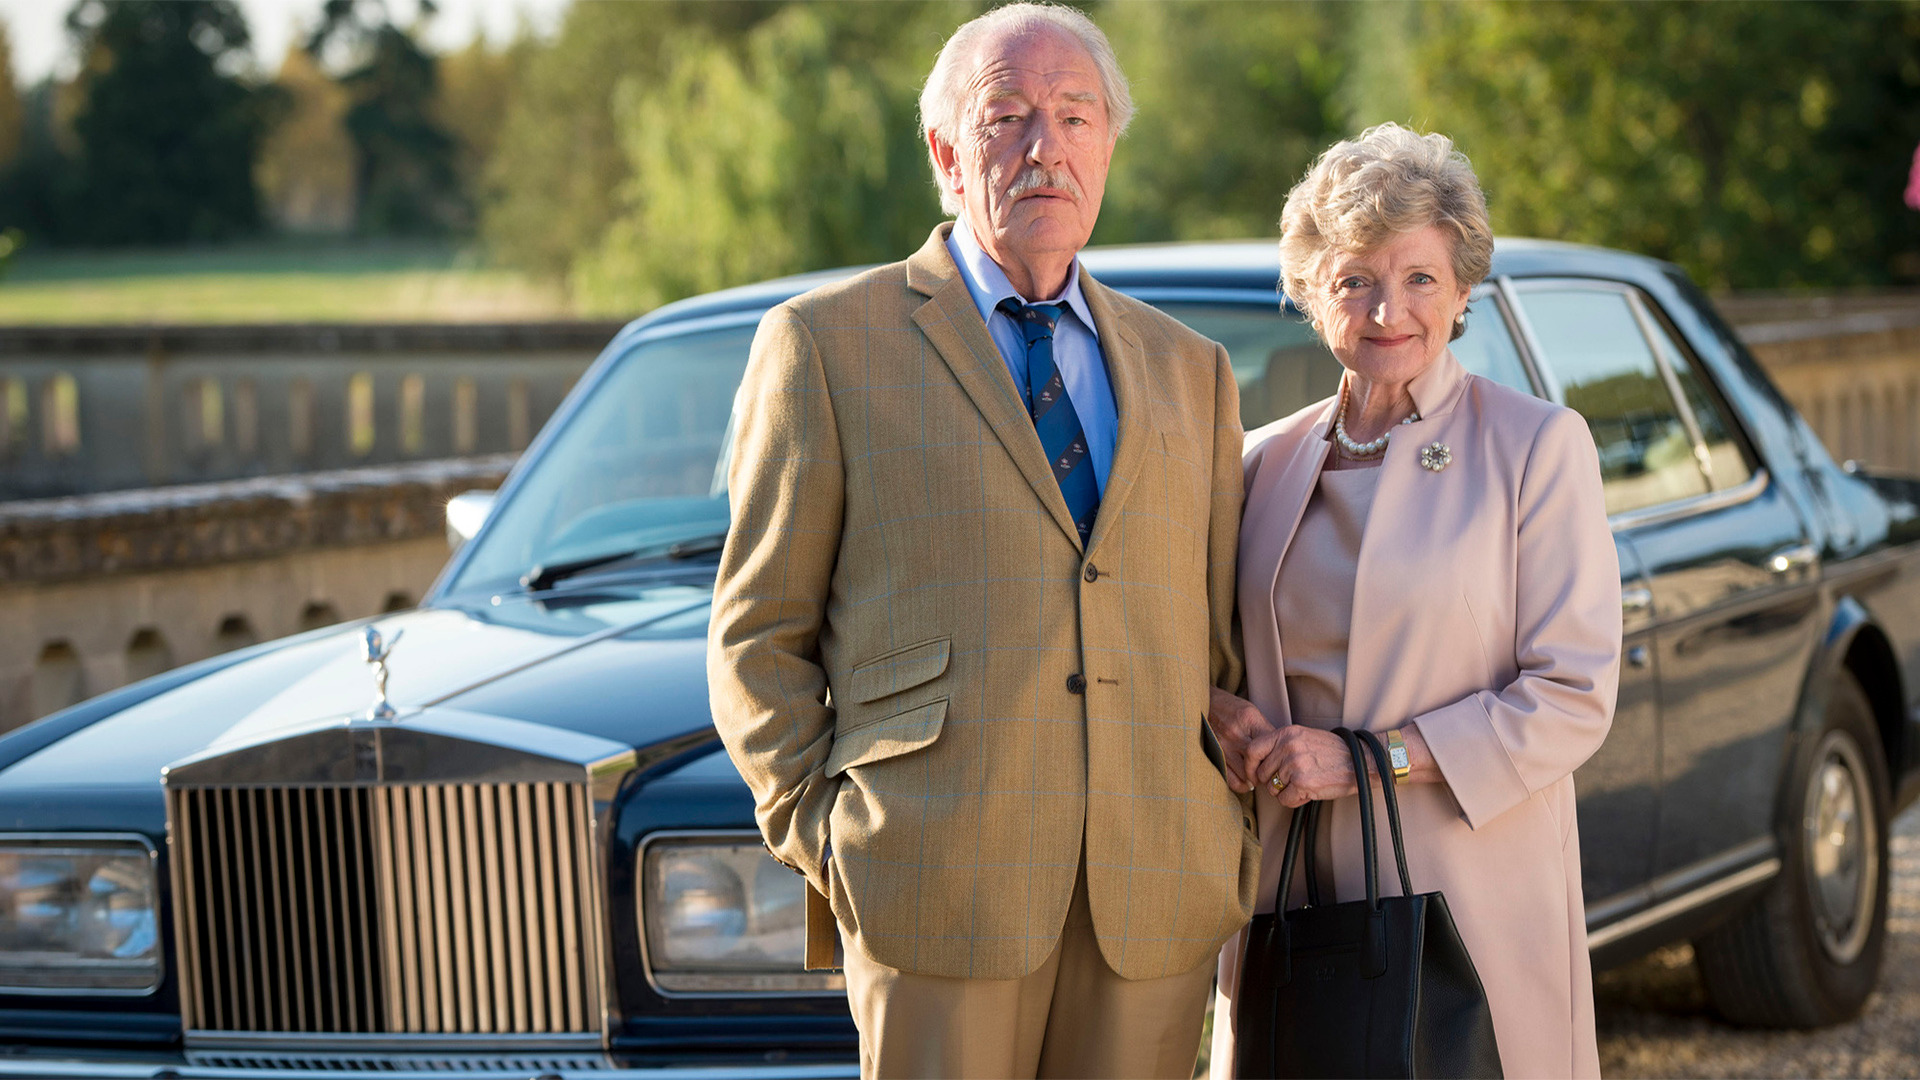 Show The Casual Vacancy